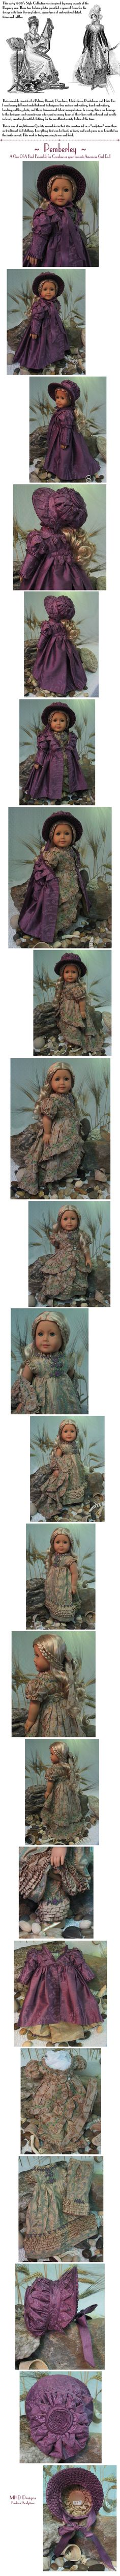 """MHD Designs """"Pemberly"""" for Caroline or other American Girl Dolls"""